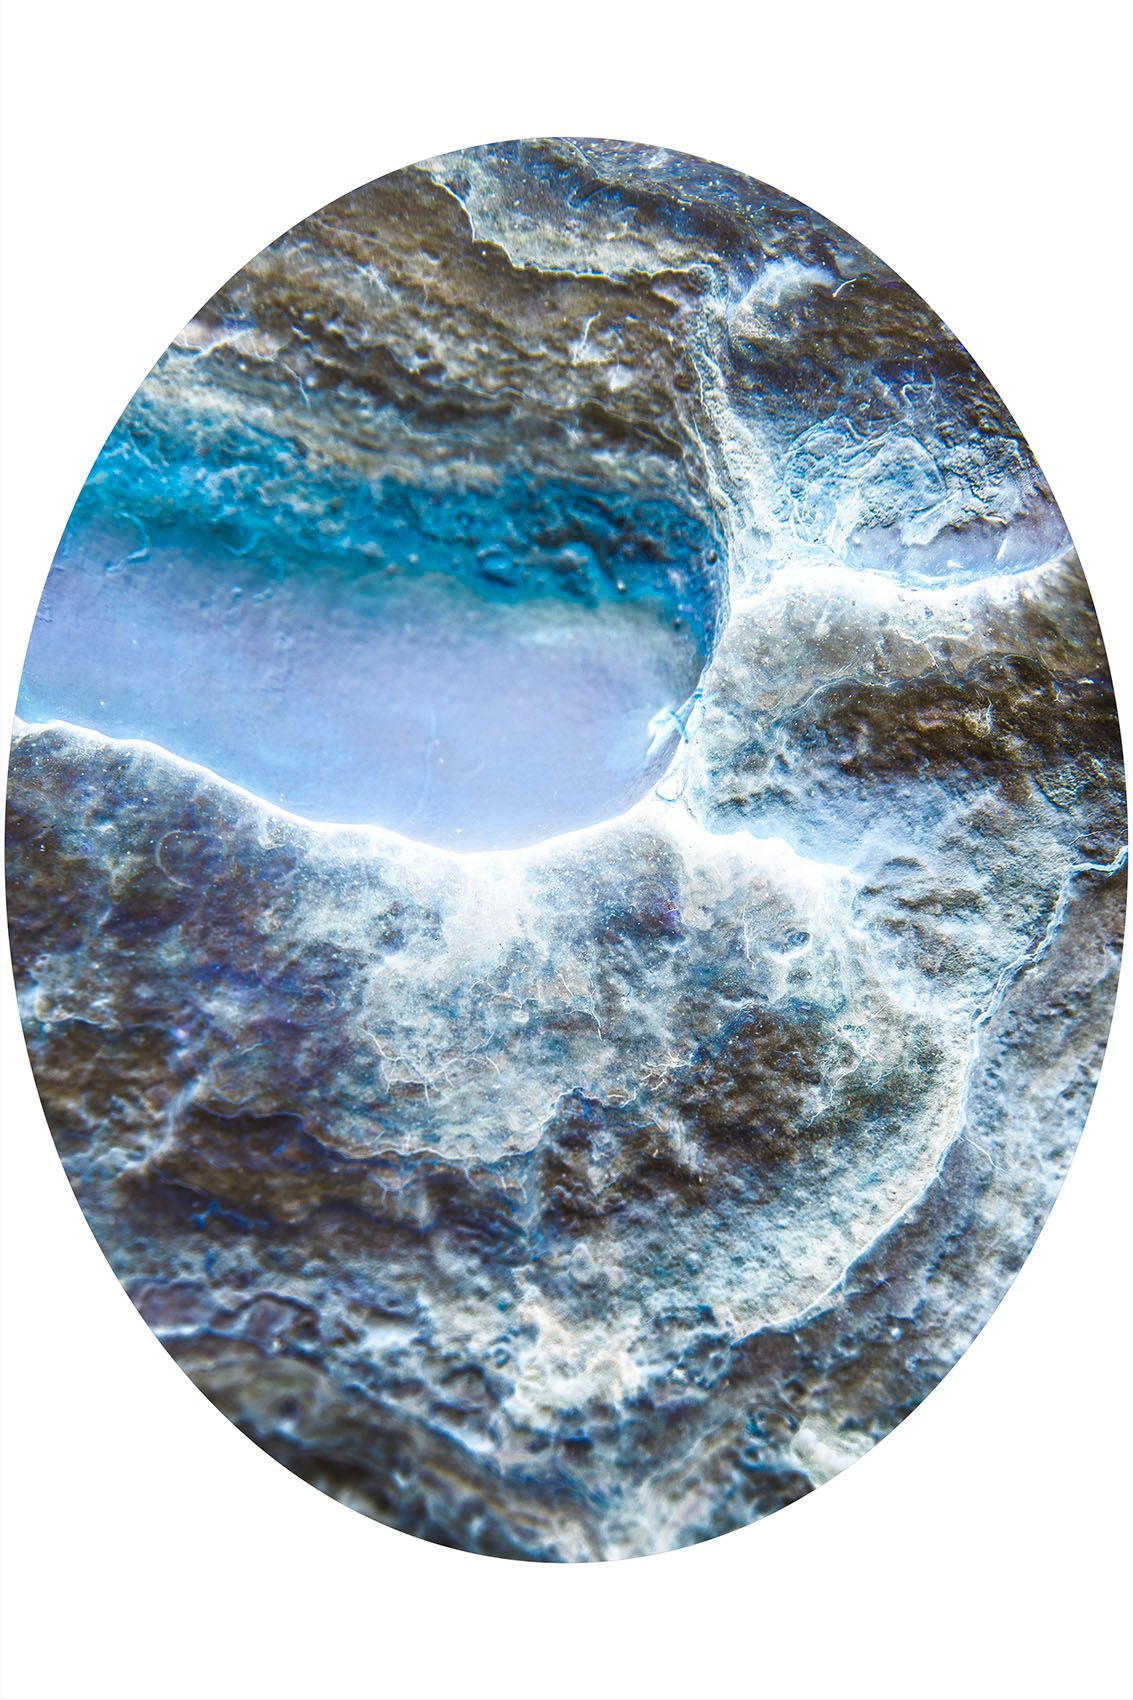 Wilderness OVAL MIRROR-Christin Paige Minnotte-1857 46 x 37 inches.jpg